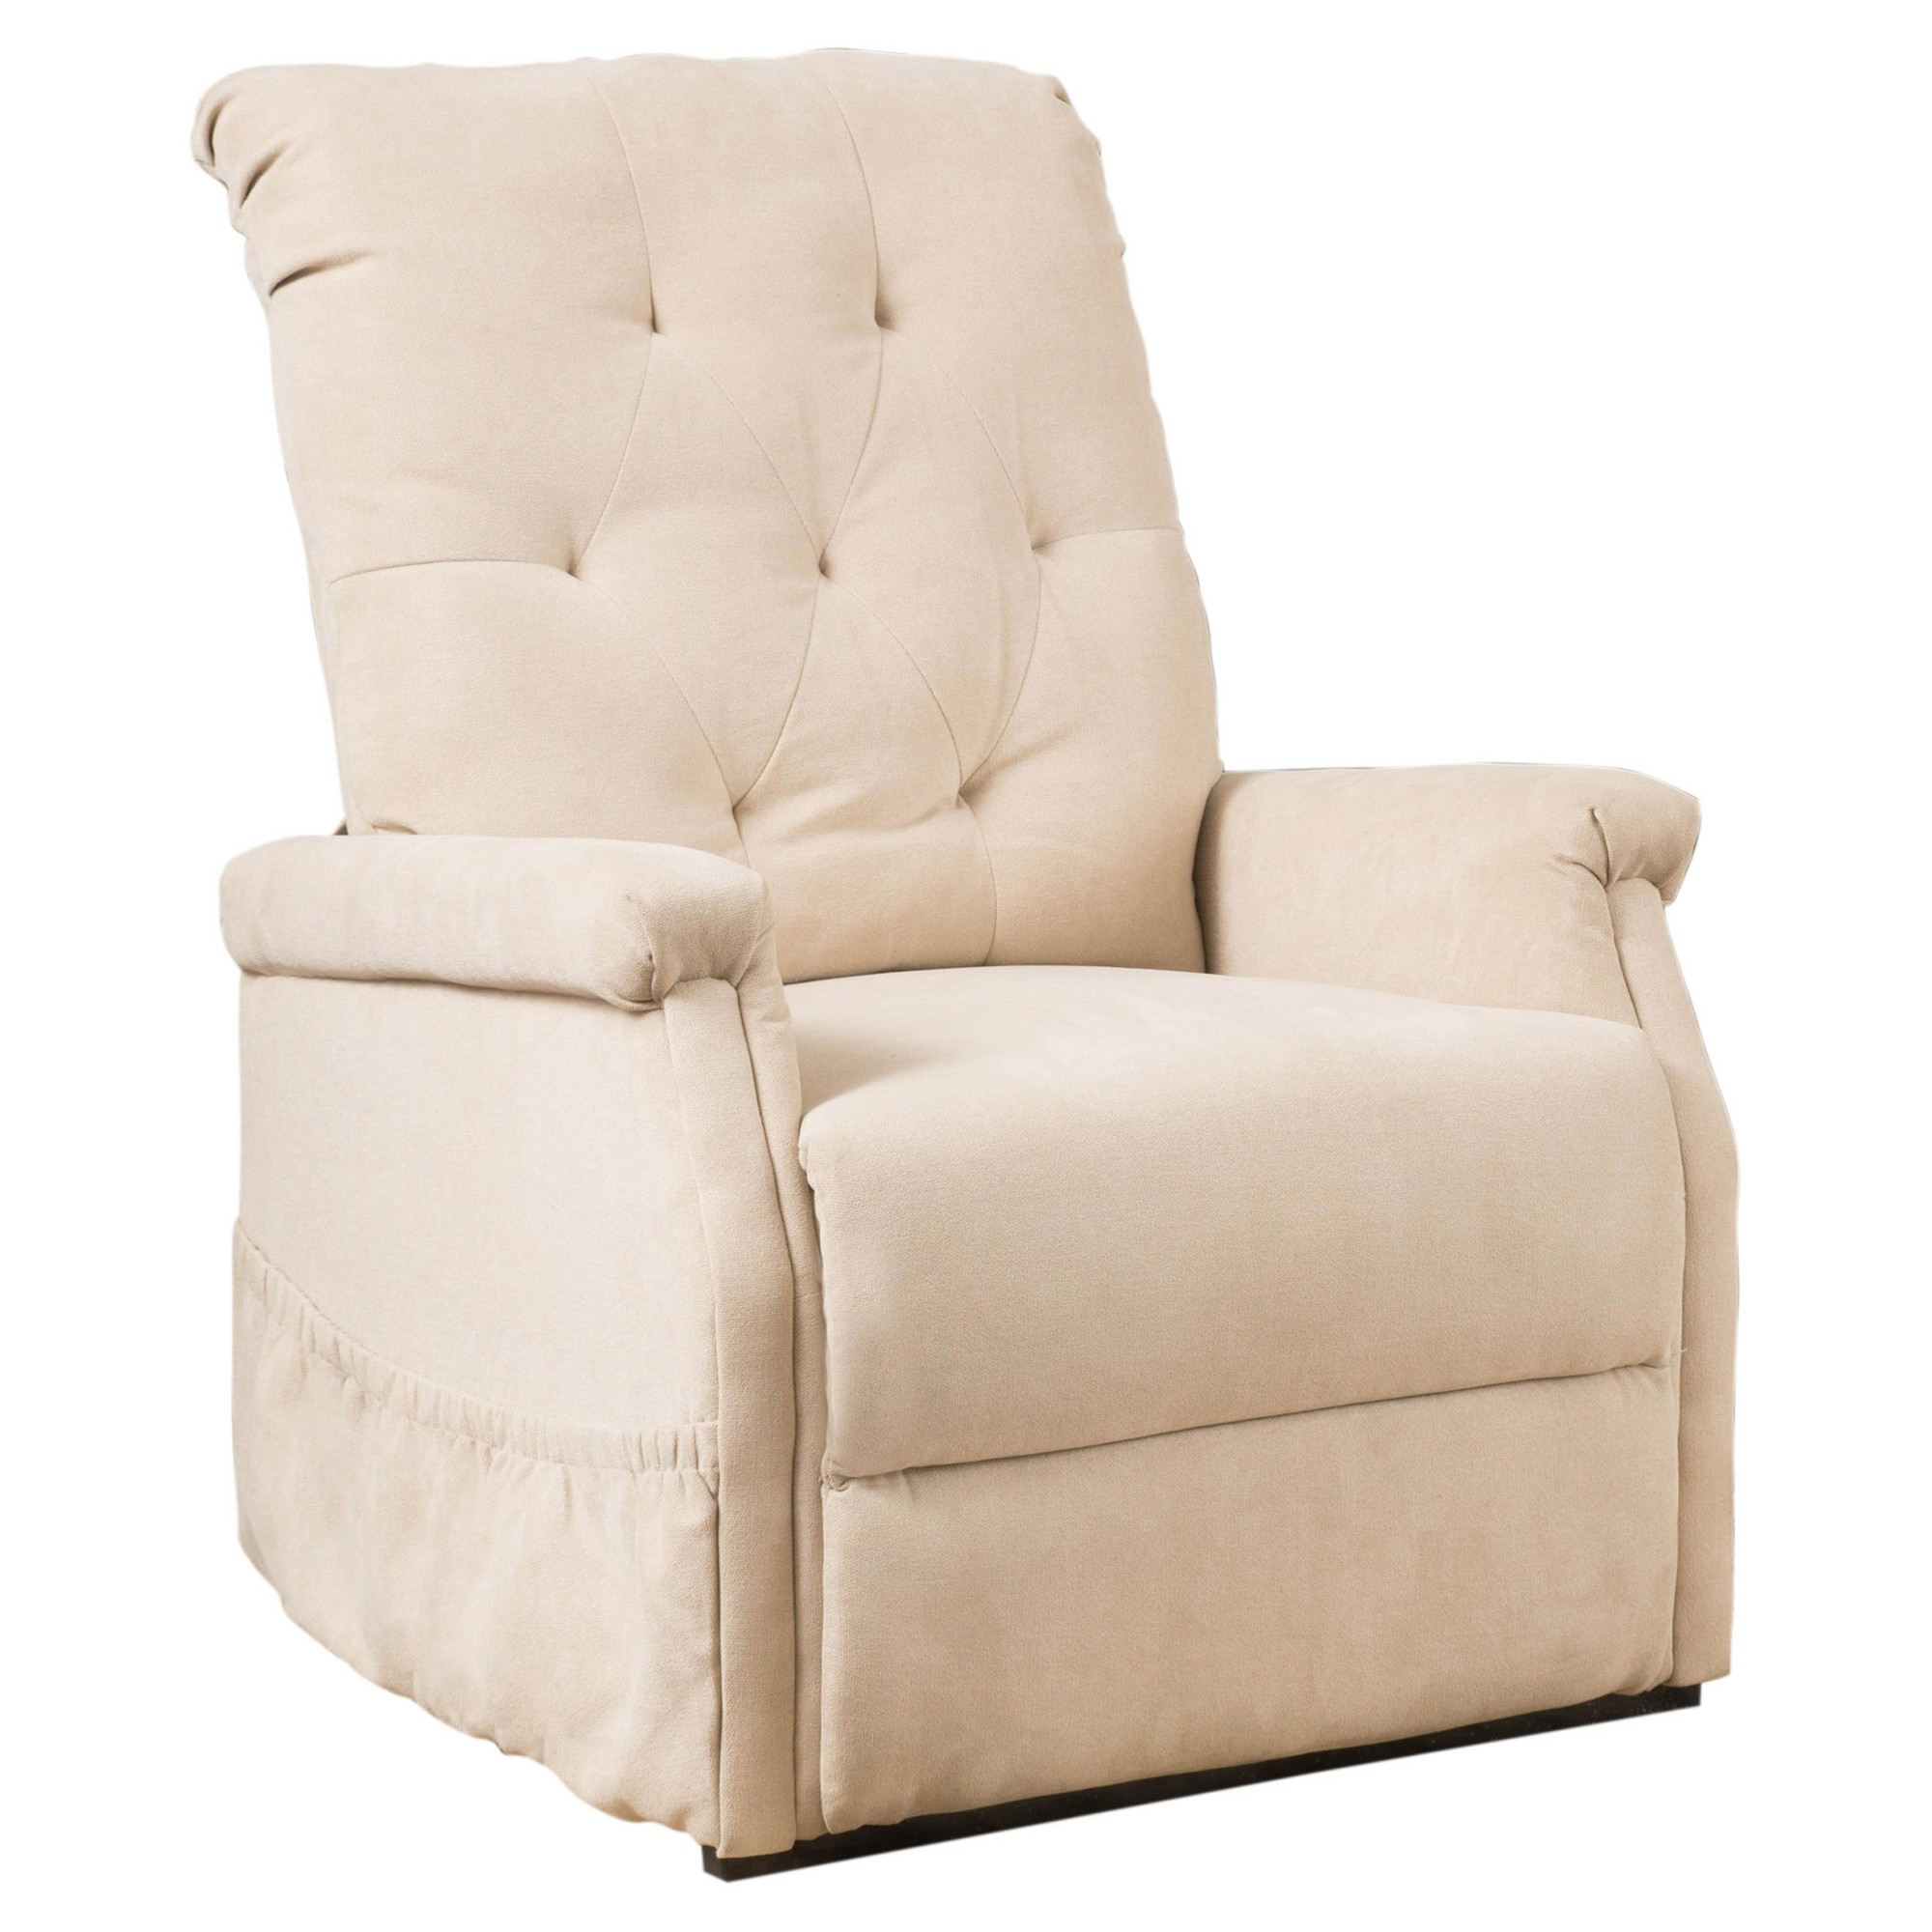 Ori Upholstered Lift Chair Wheat Christopher Knight